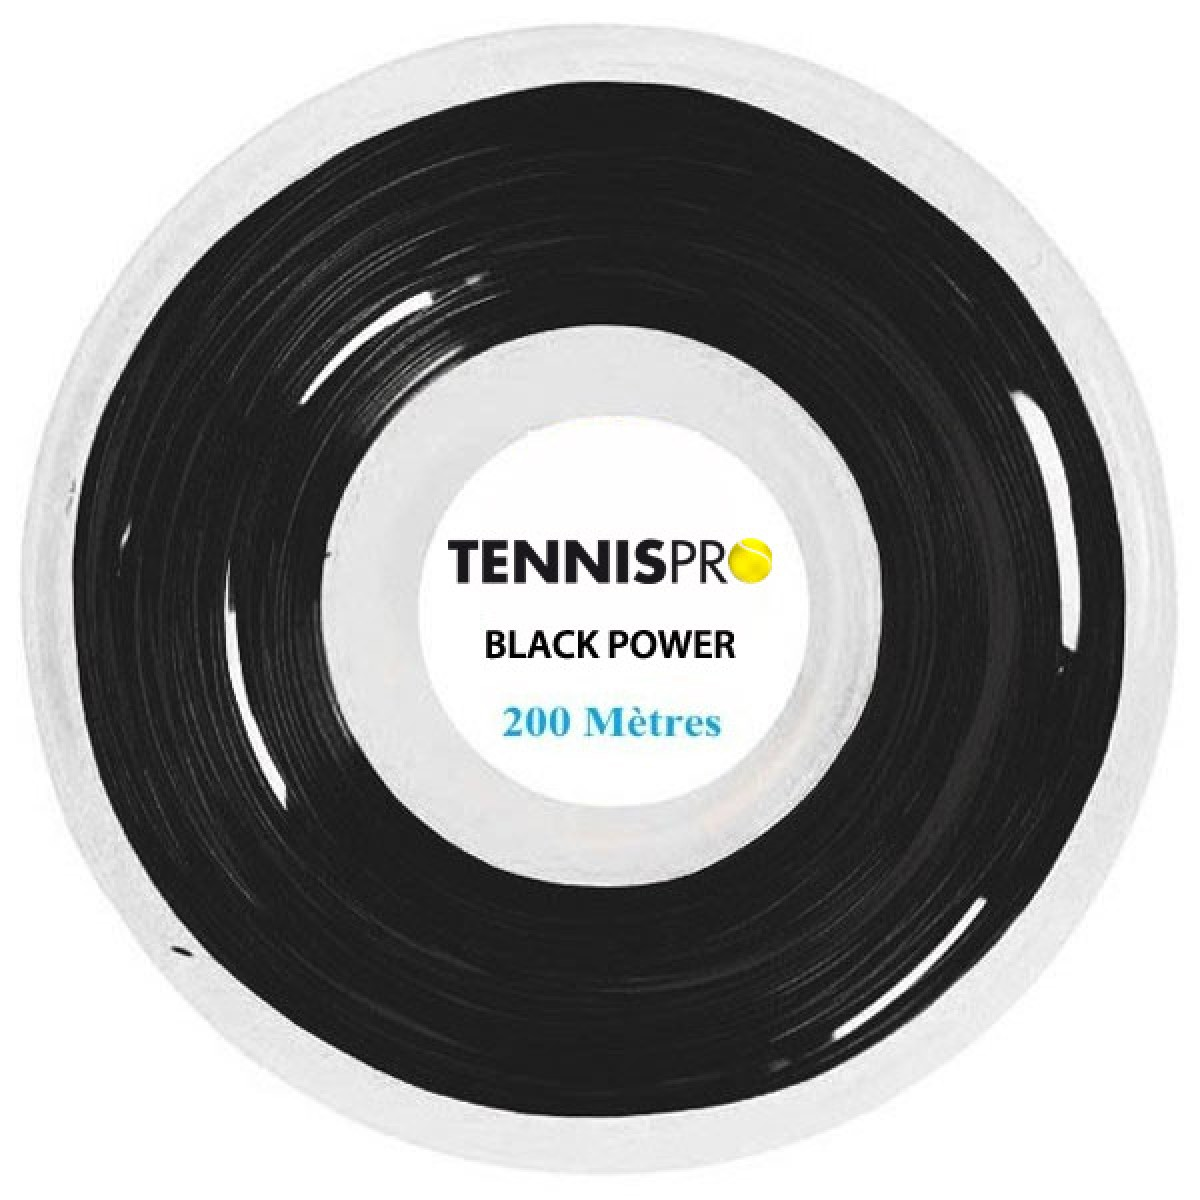 TENNISPRO BLACK POWER (220 METRES) STRING REEL